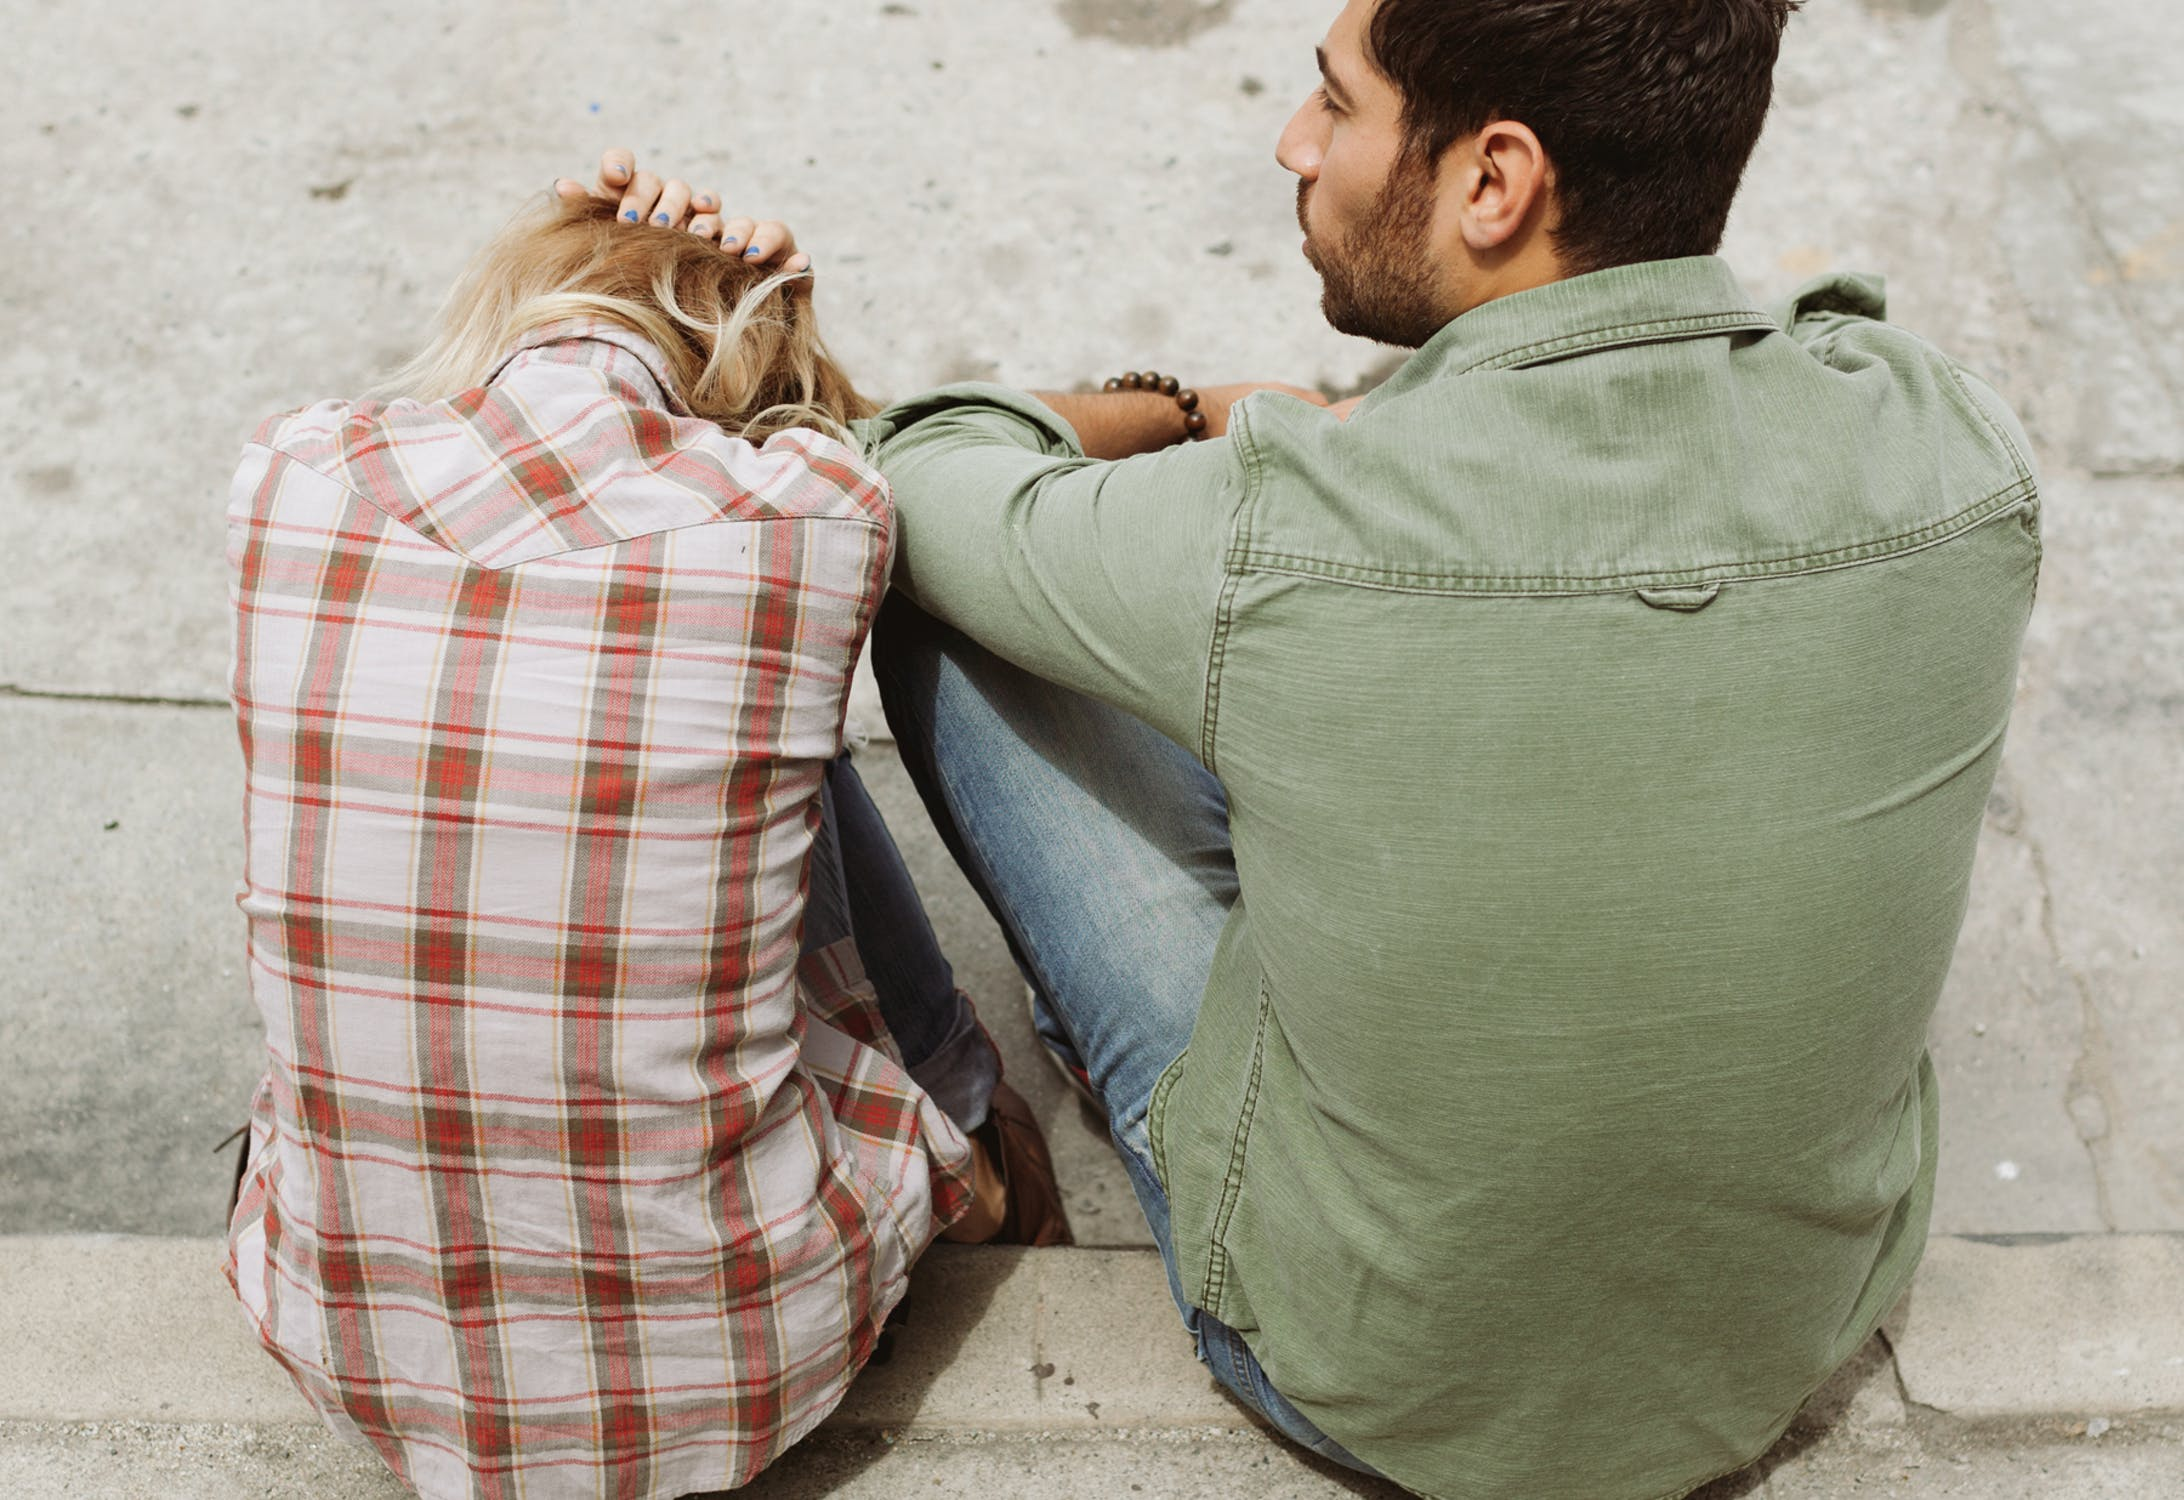 10 mistakes that cause relationships to fail